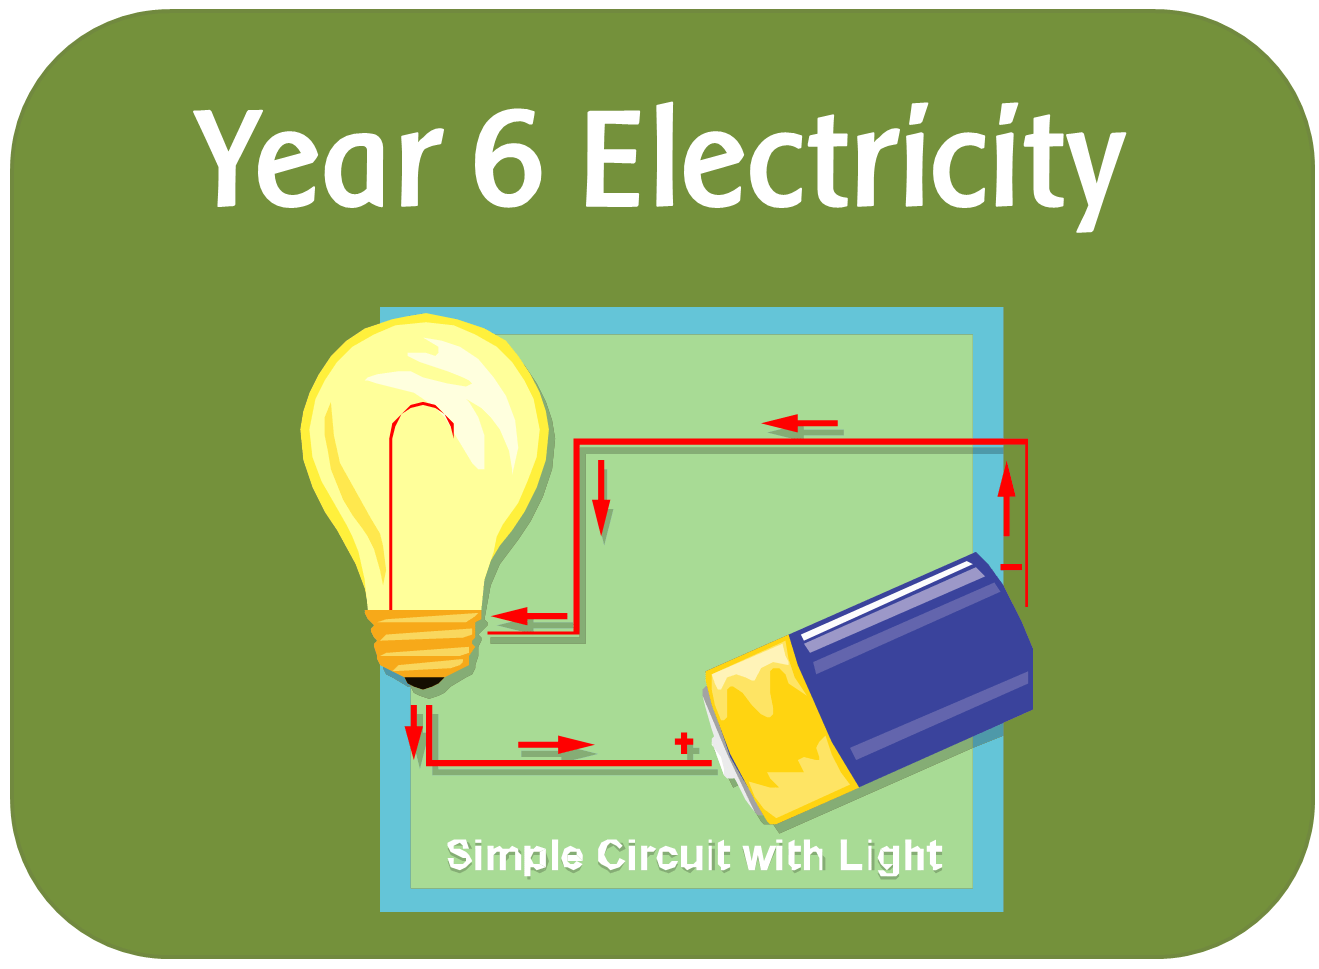 hight resolution of year 6 electricity science topic powerpoint lessons activities and display pack by highwaystar teaching resources tes